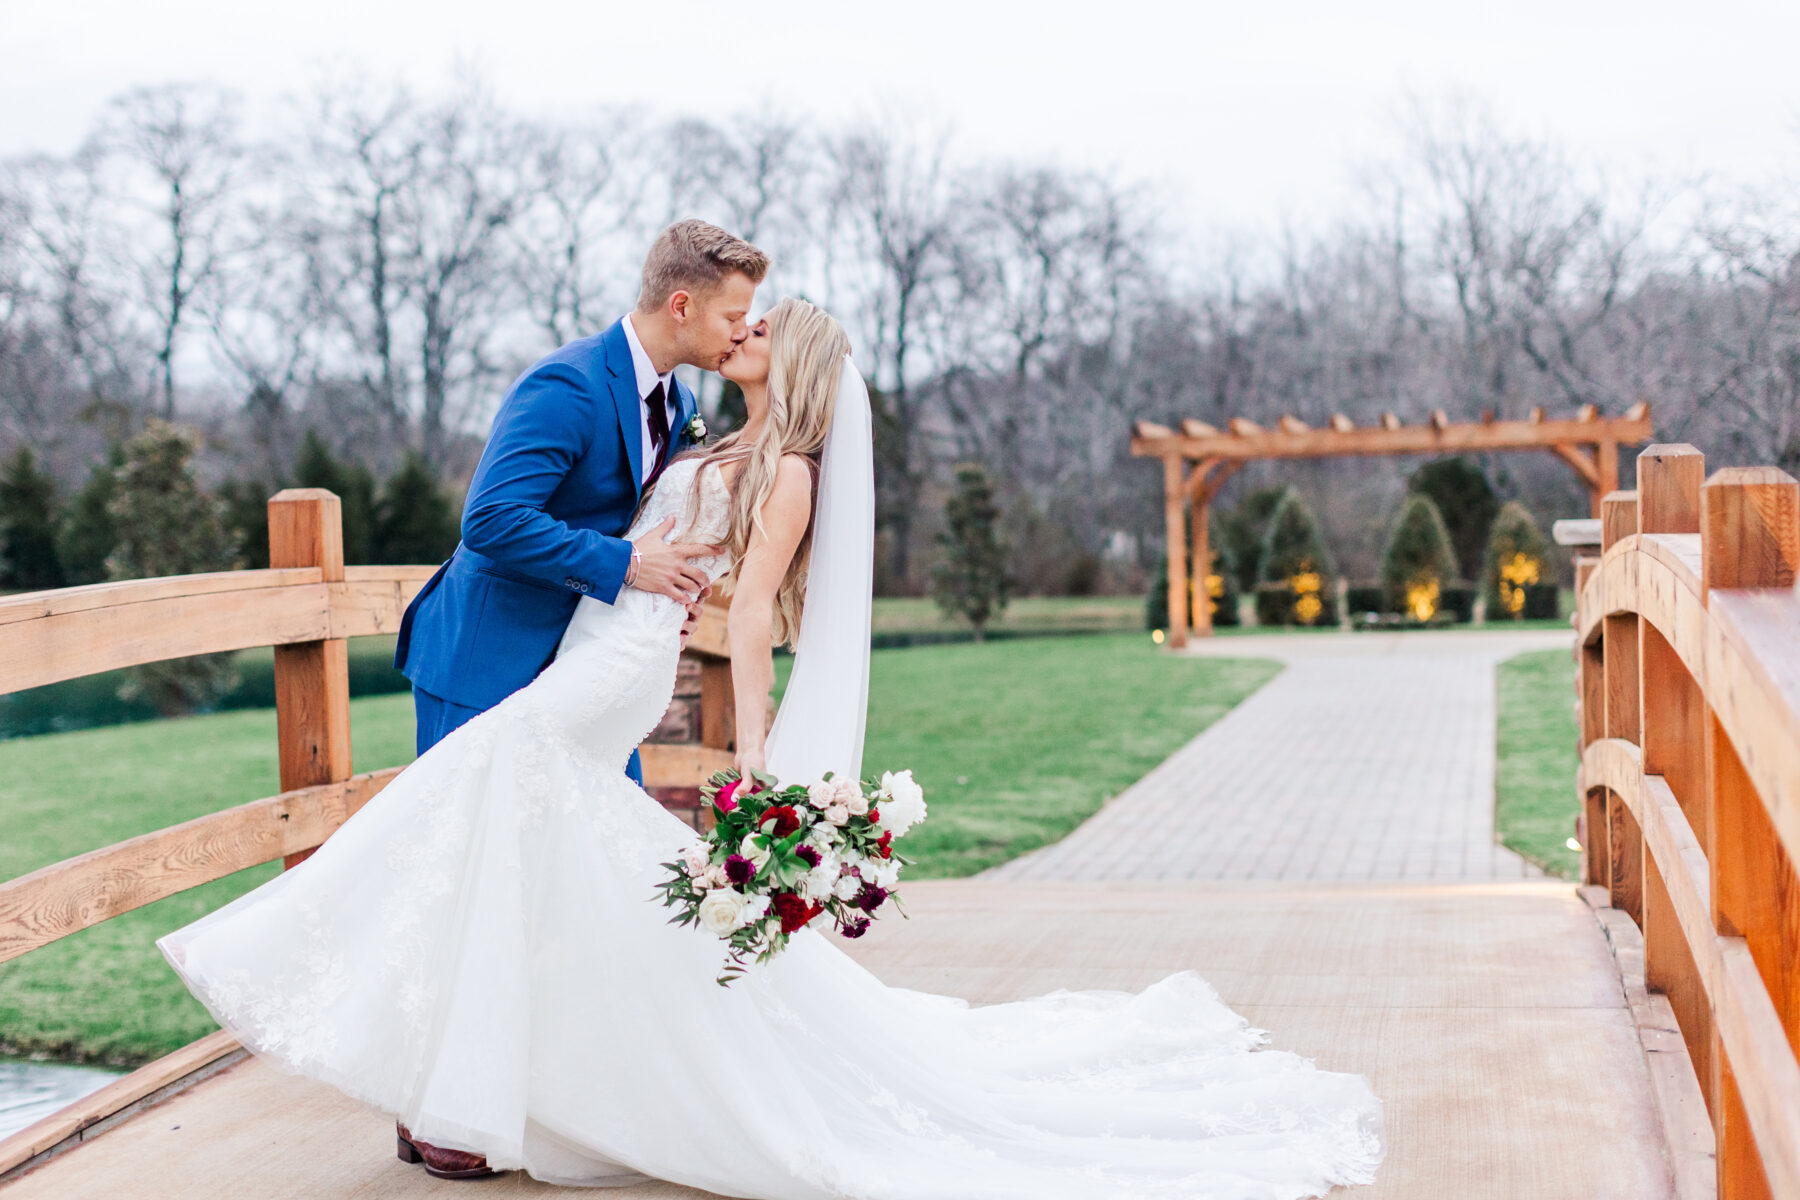 Sycamore Farms Winter Wedding | Nashville Bride Guide